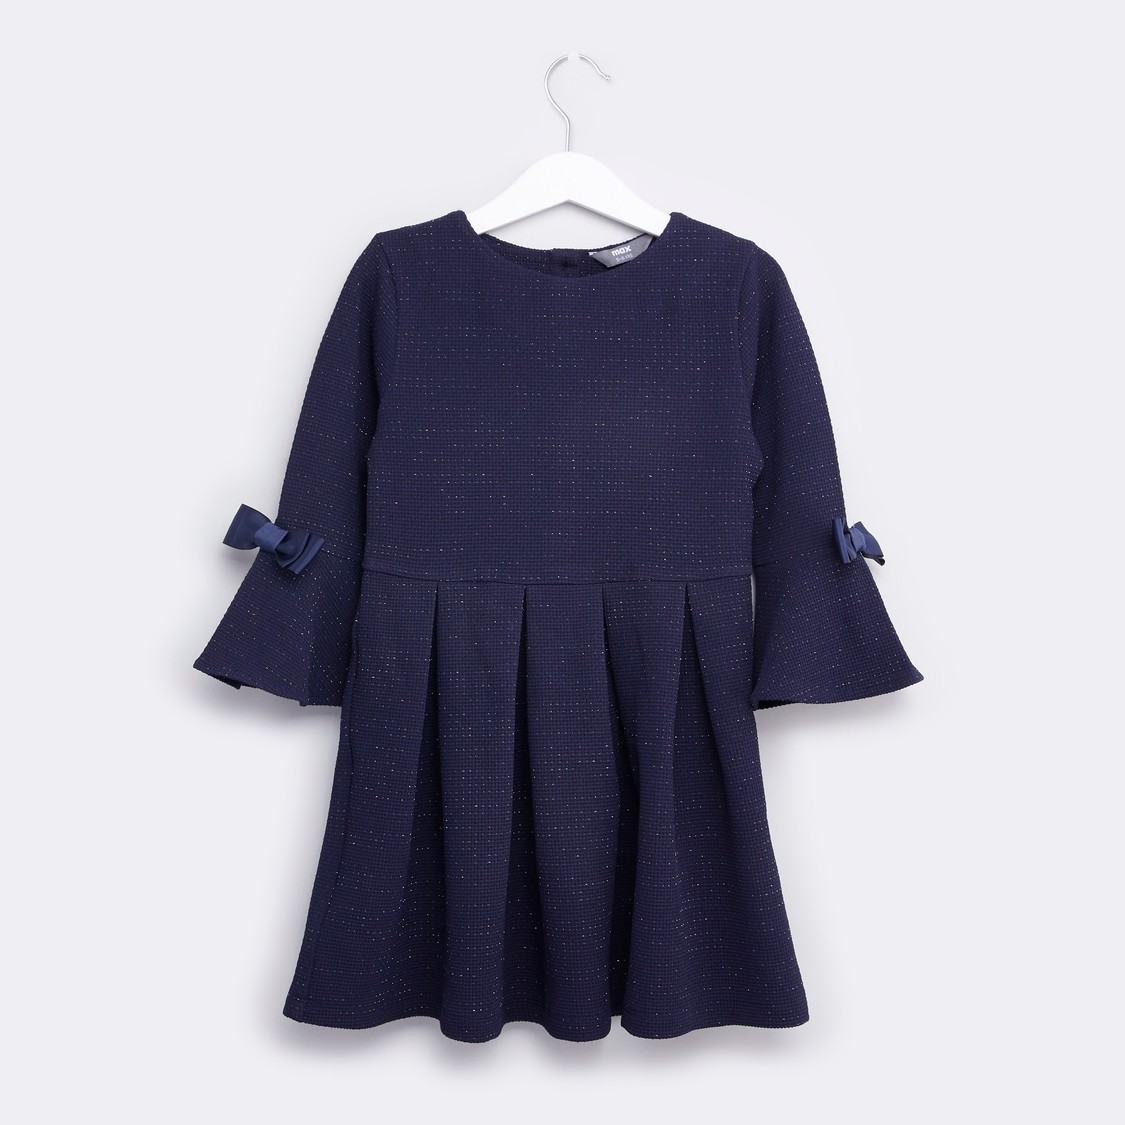 Textured Dress with Round Neck and Long Sleeves